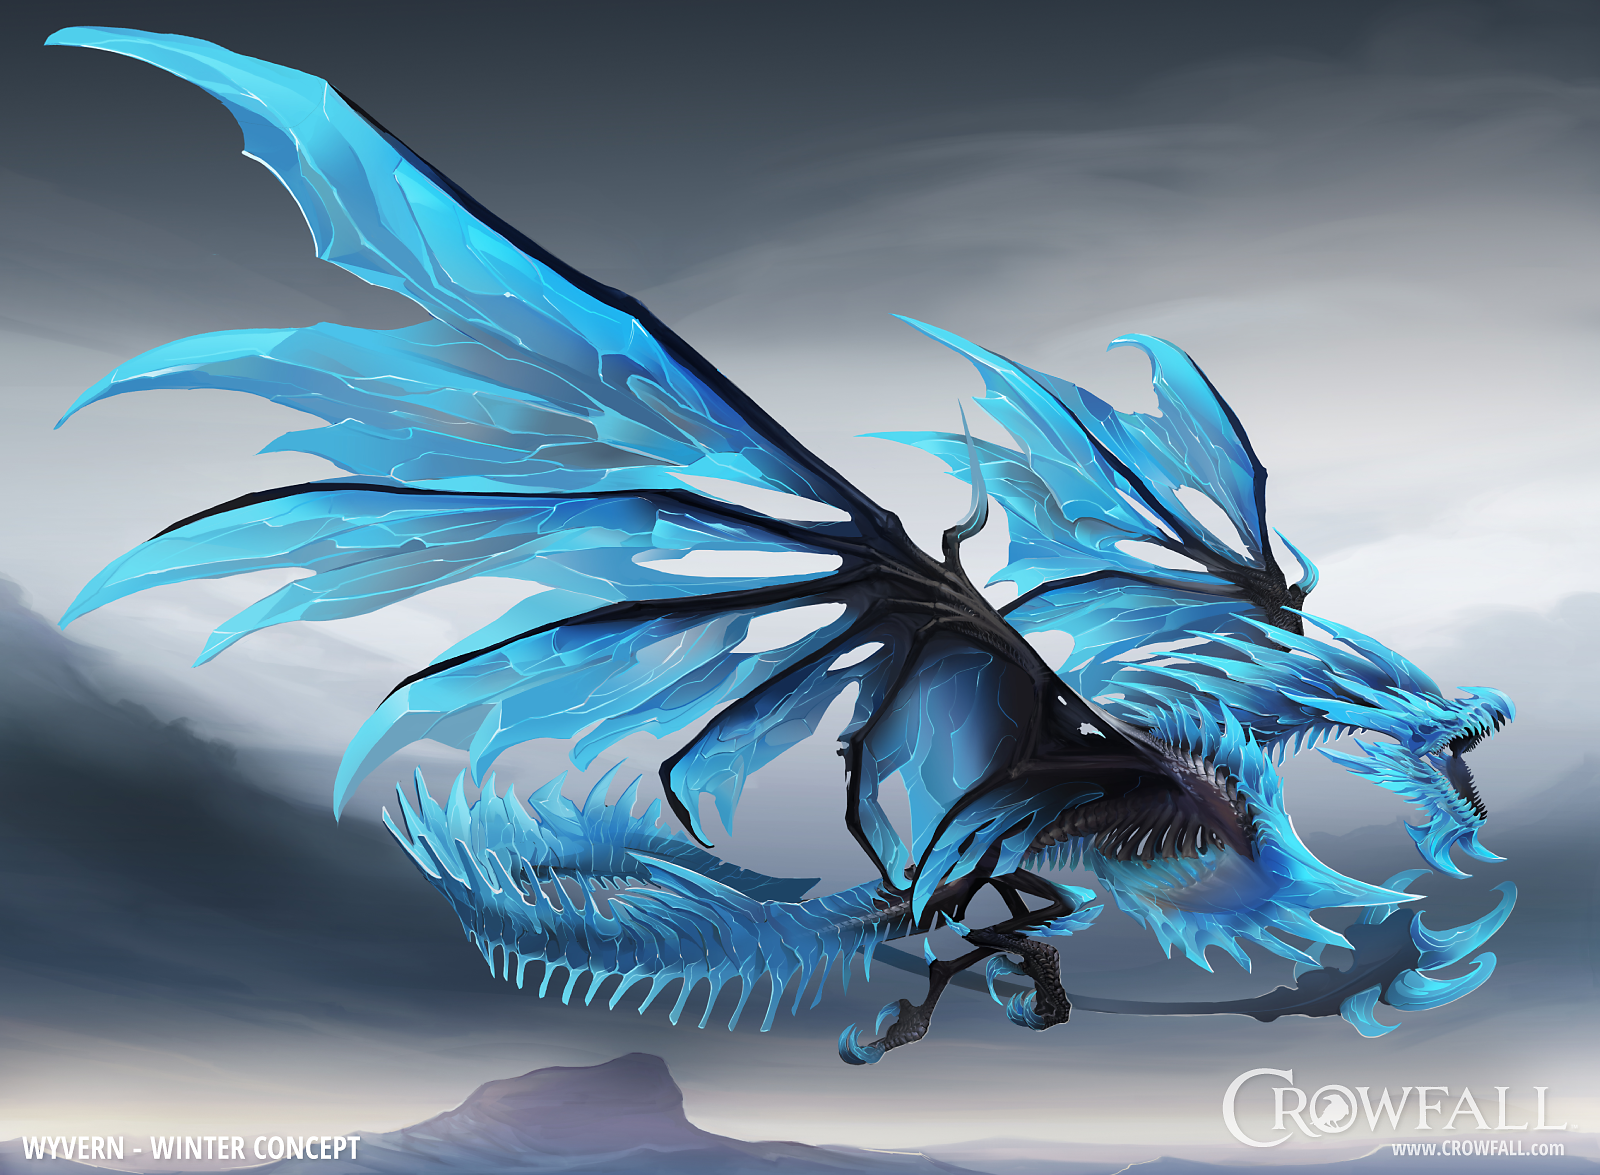 Wyvern Winter Concept